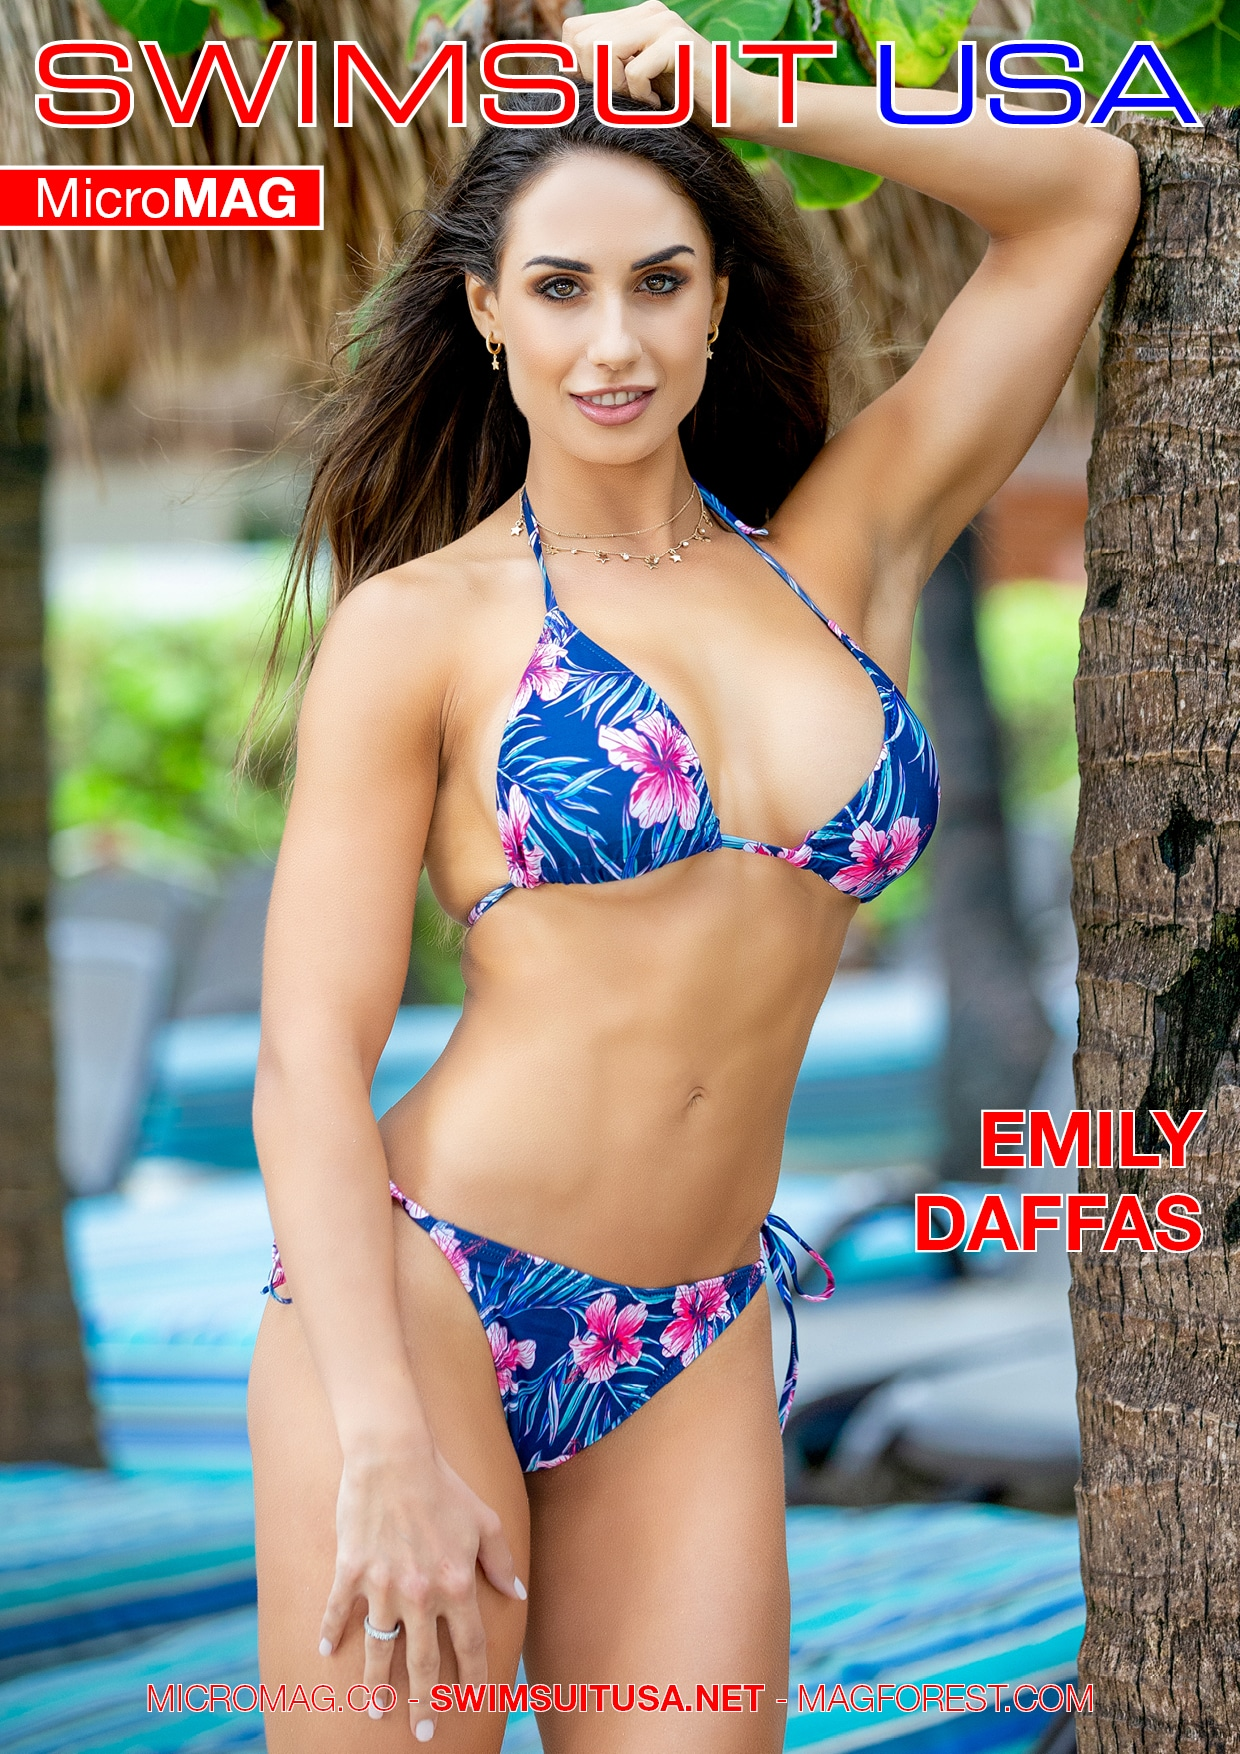 Swimsuit USA MicroMAG - Laura Odegard - Issue 2 4